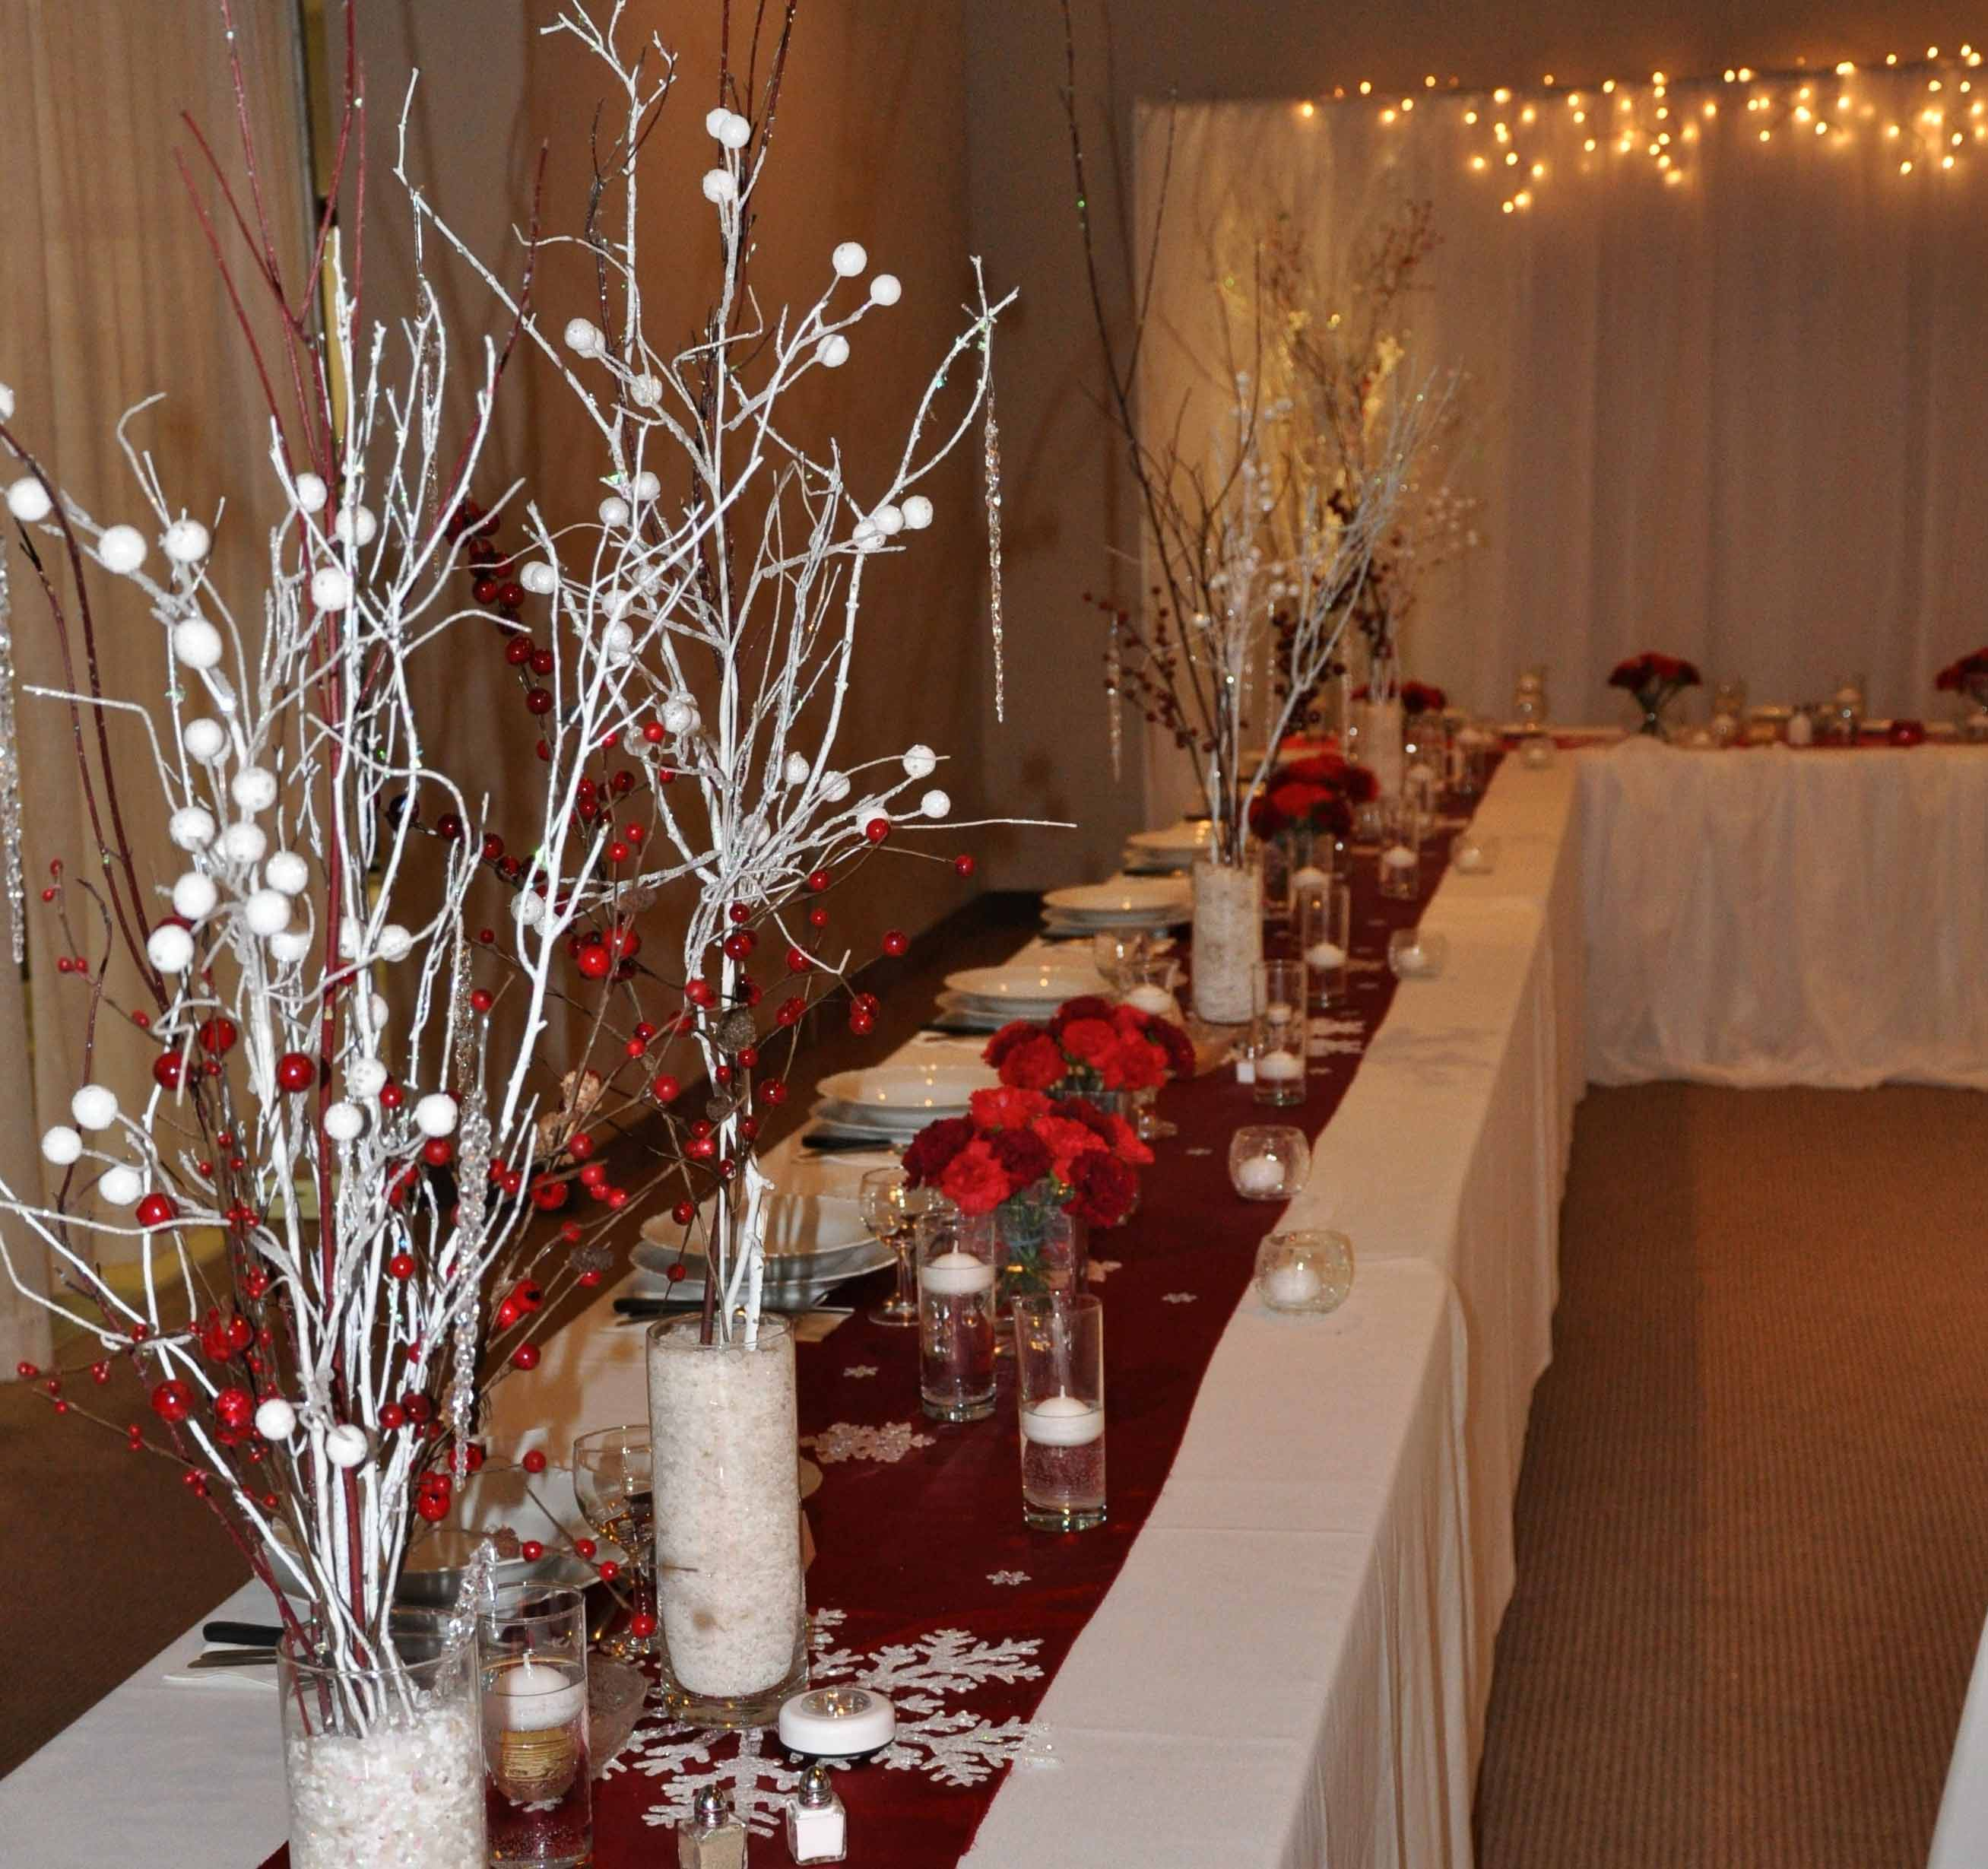 where-to-buy-wedding-decorations-beautiful-red-and-white-rustic-winter-themed-wedding-decor-Winter Themed Wedding Ideas decorations